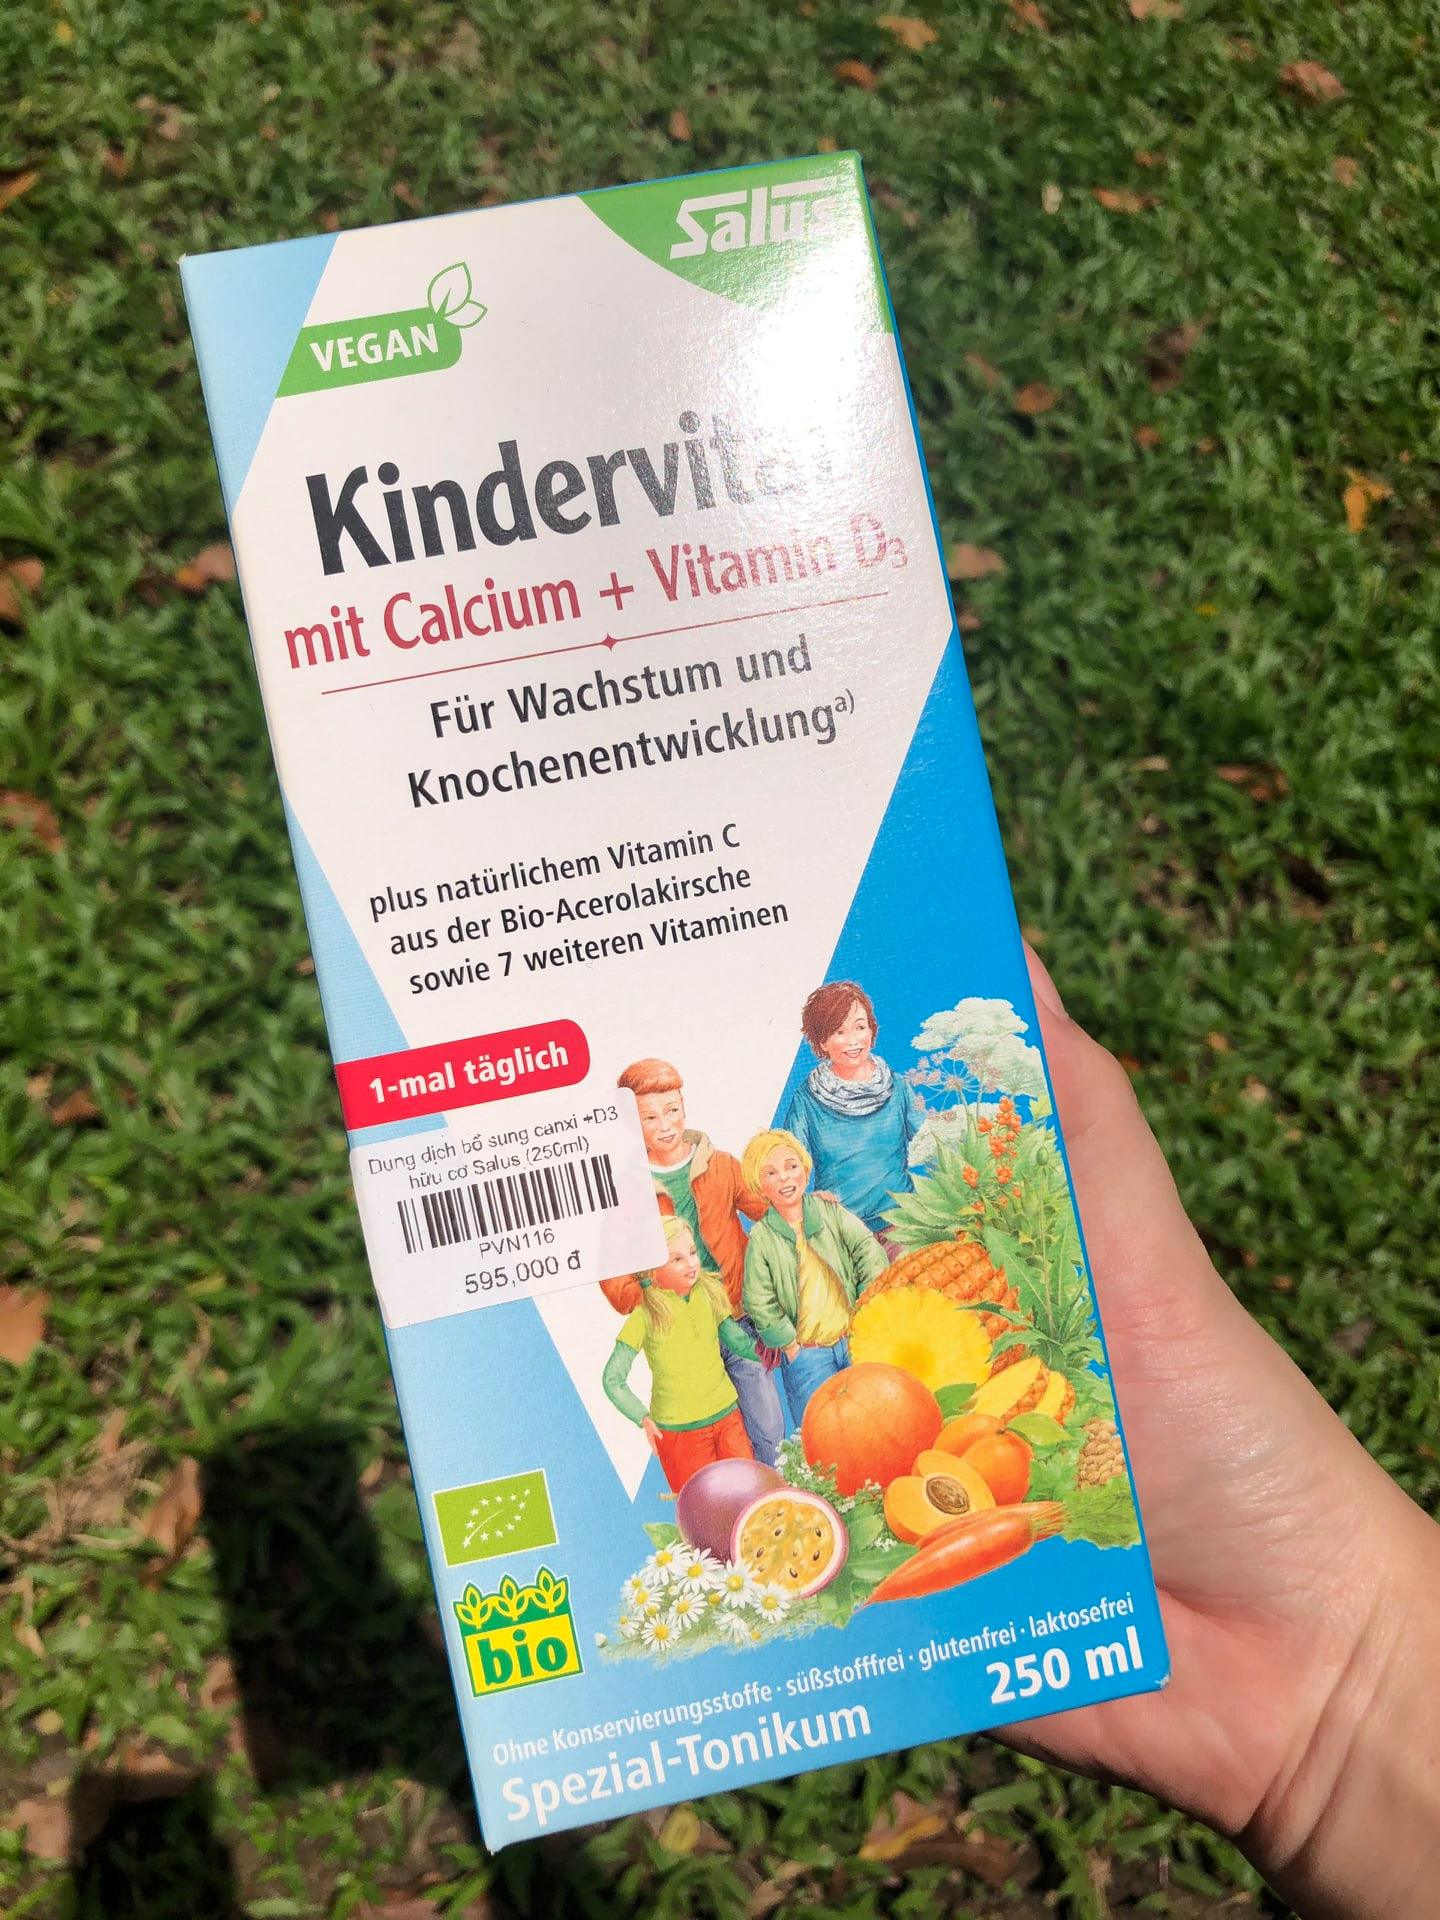 Dung dịch Canxi +D3 Kindervital - Salus